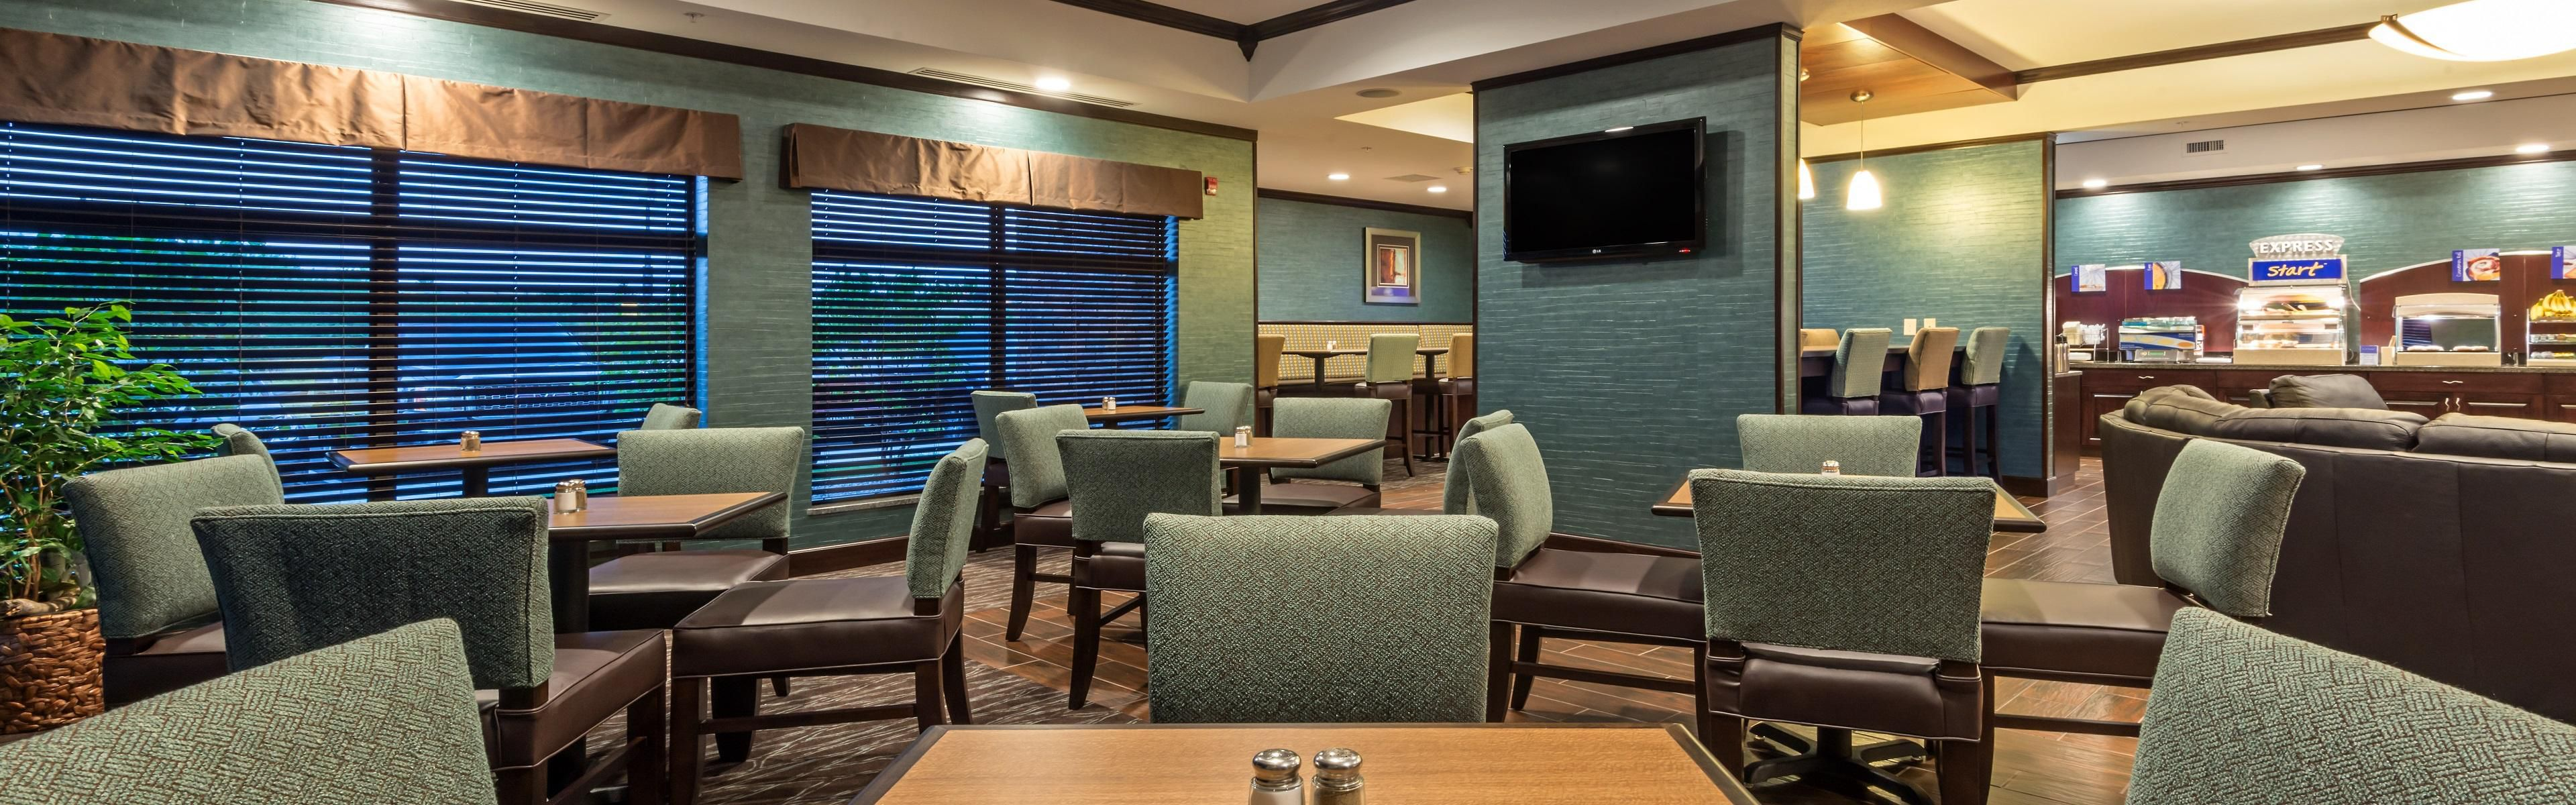 Holiday Inn Express & Suites Butte image 3